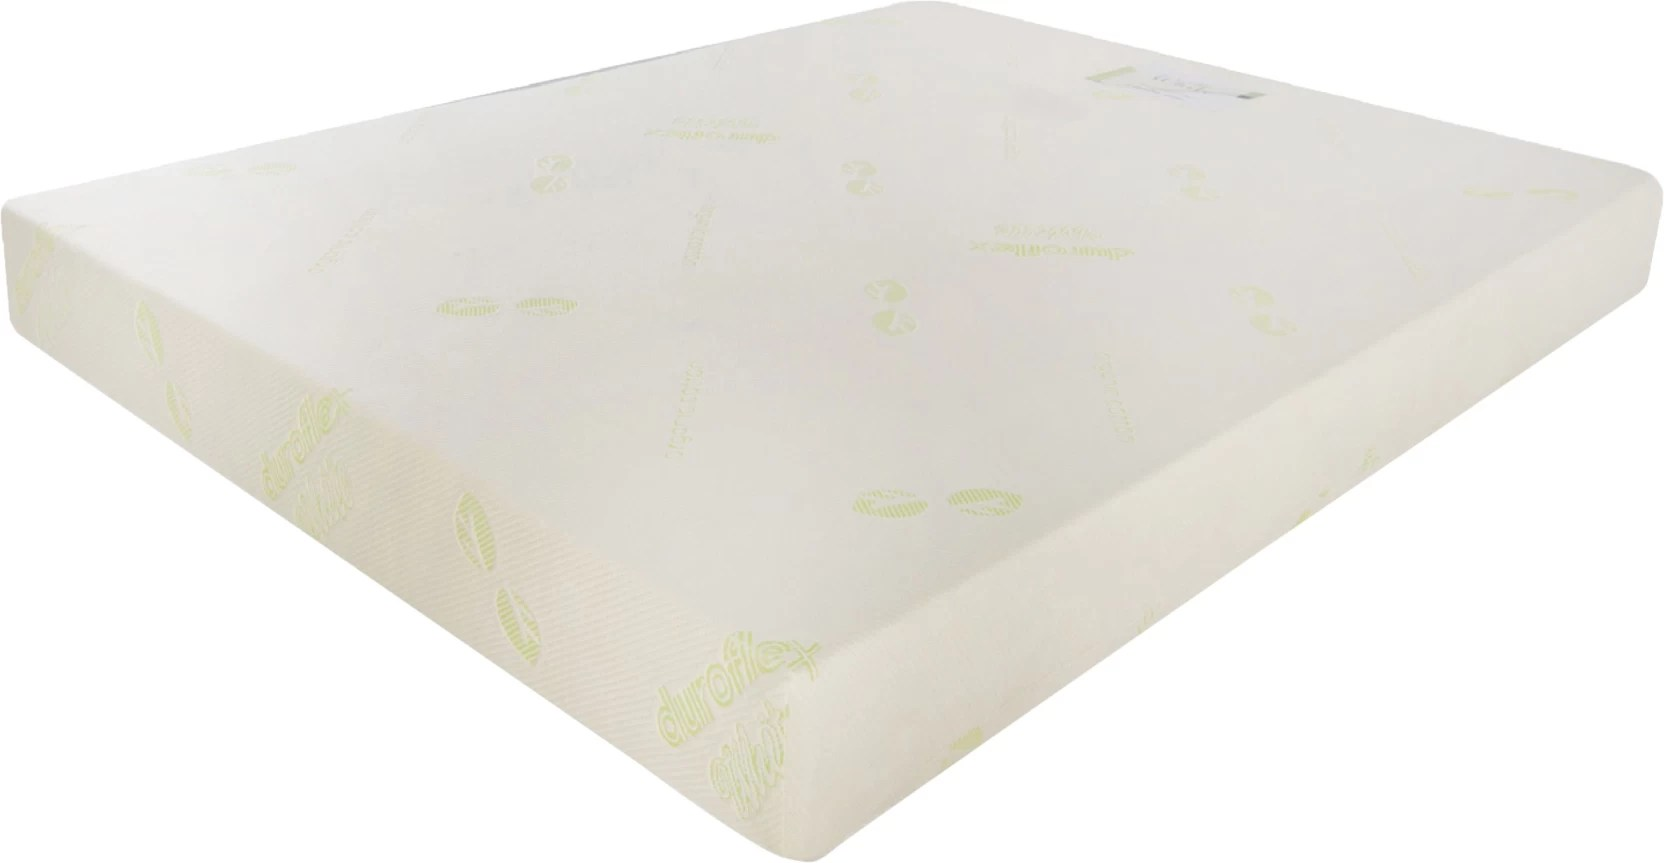 Latex Foam Mattress Duroflex White 5 Inch Queen Latex Foam Mattress Price In India